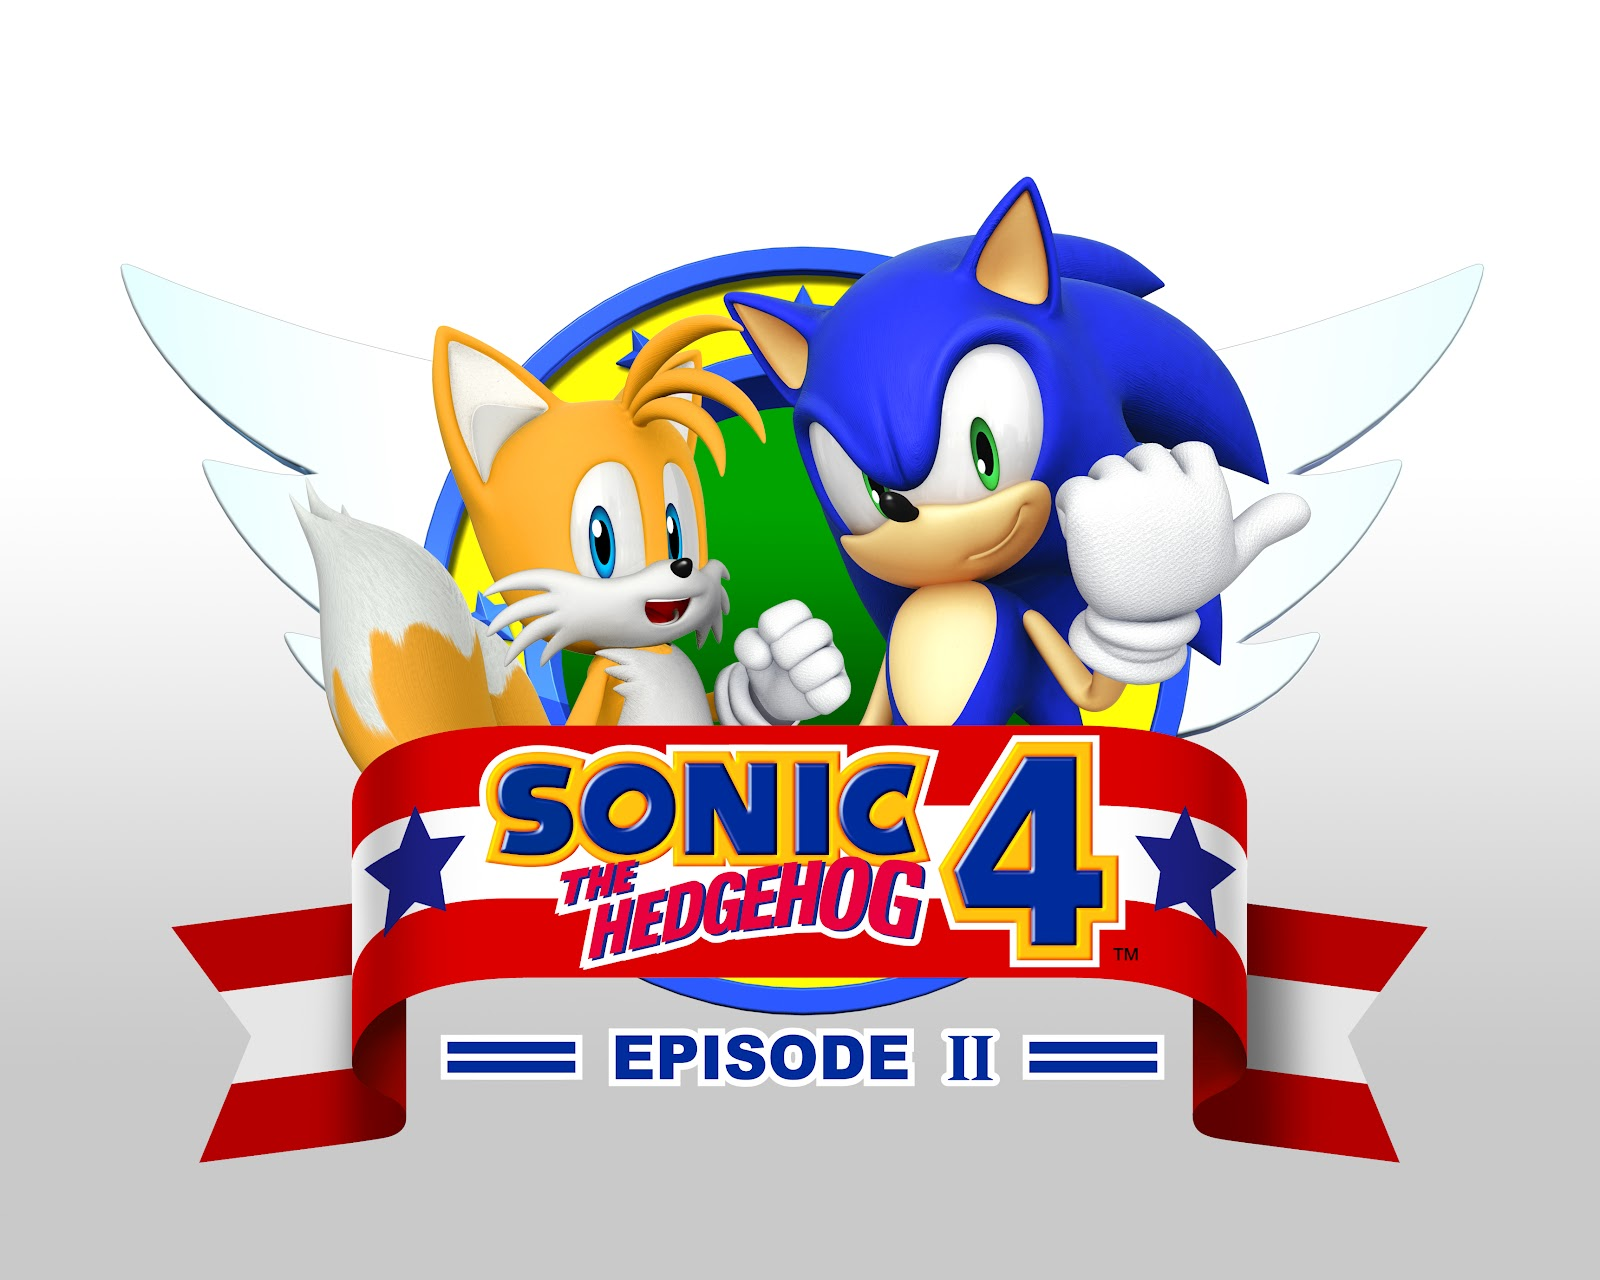 http://2.bp.blogspot.com/-x7dvcQehQJc/T4FmX5_Y_bI/AAAAAAAABLk/De3IfgJCKhE/s1600/Sonic_The_Hedgehog_4_Episode_2_HD_Wallpaper-gWb.jpg